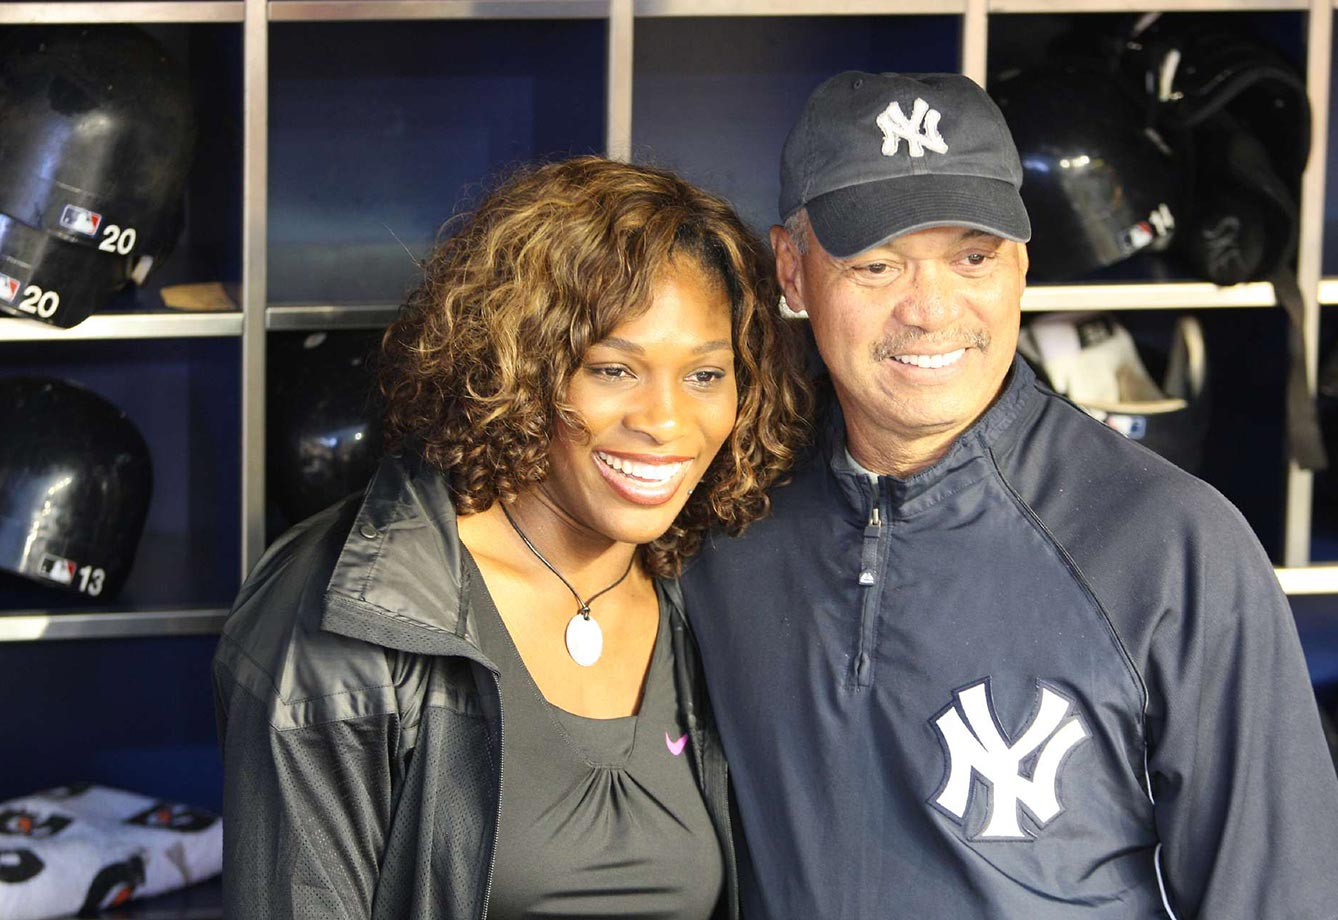 Serena is seen here enjoying a White Sox-Yankees game with former-Bronx bomber Reggie Jackson.